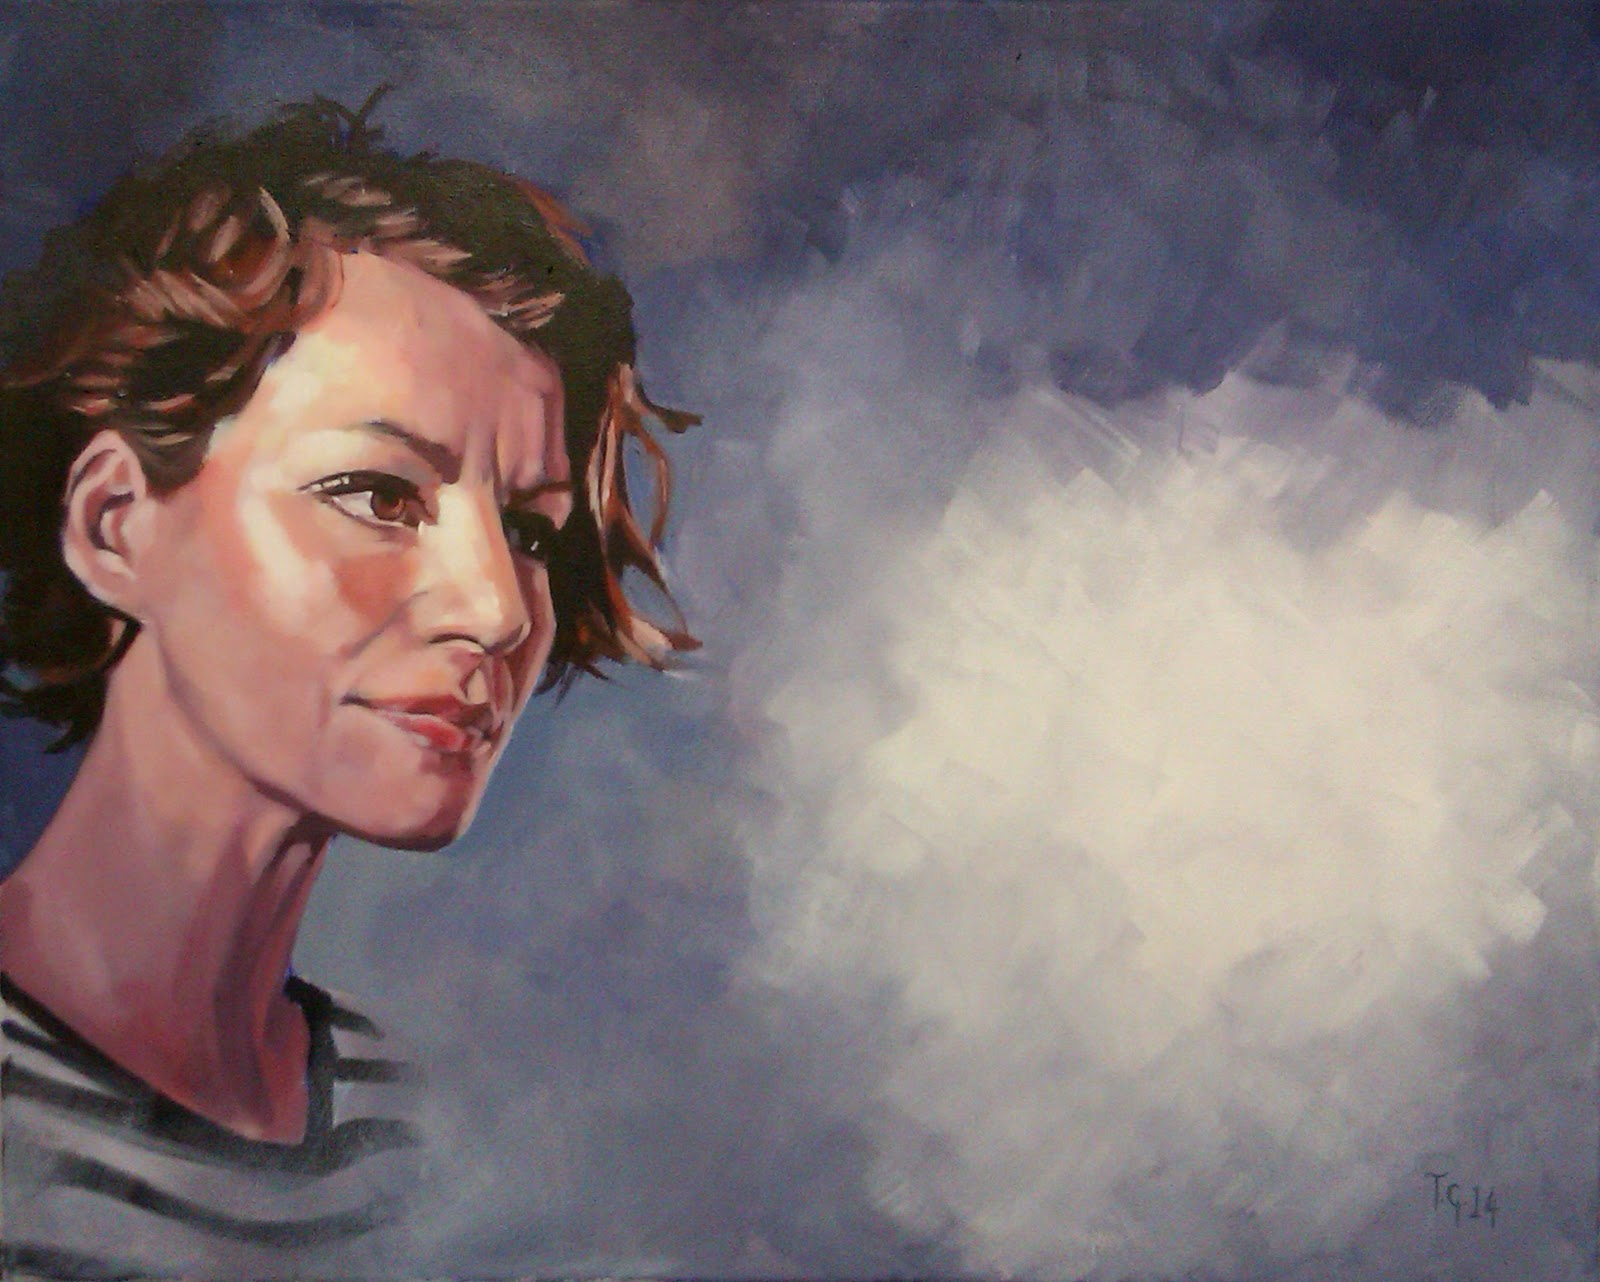 Painting No.20 for 'The Eternal Now' Theme of paintings, by Anthony Greentree